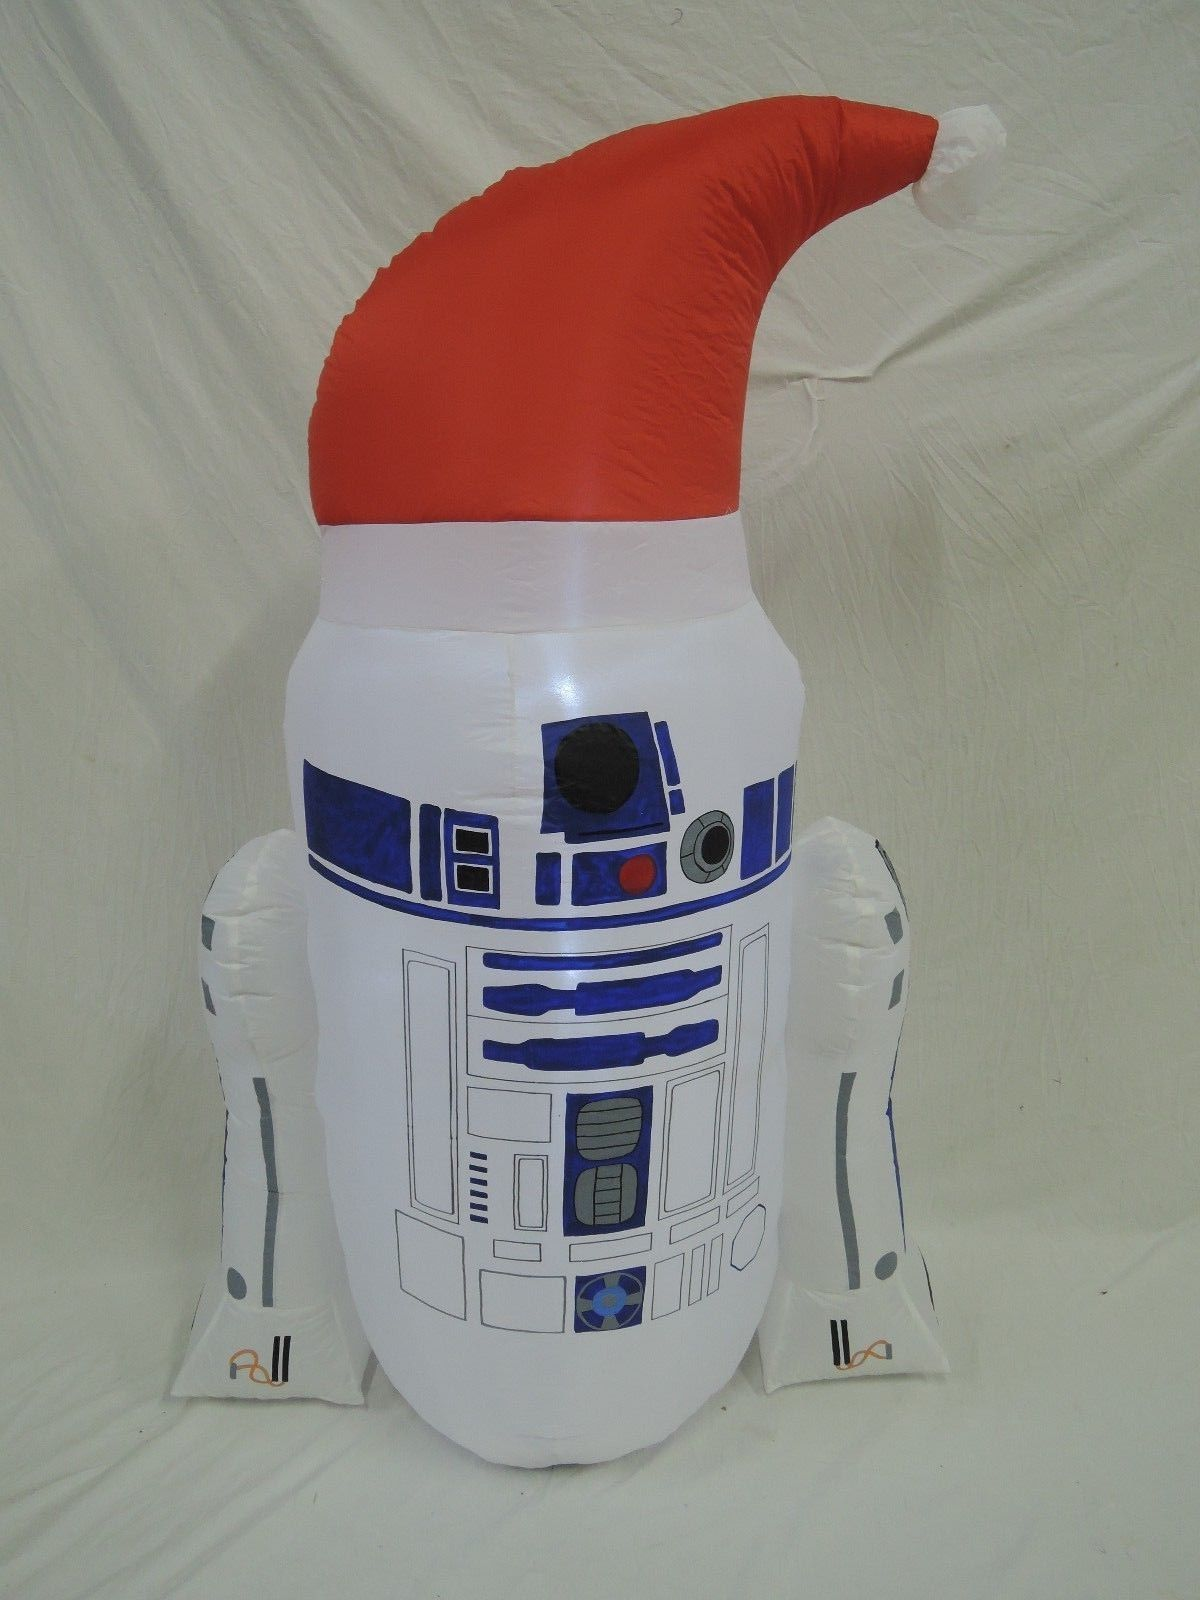 gemmy inflatable christmas r2d2 from star warsjpg